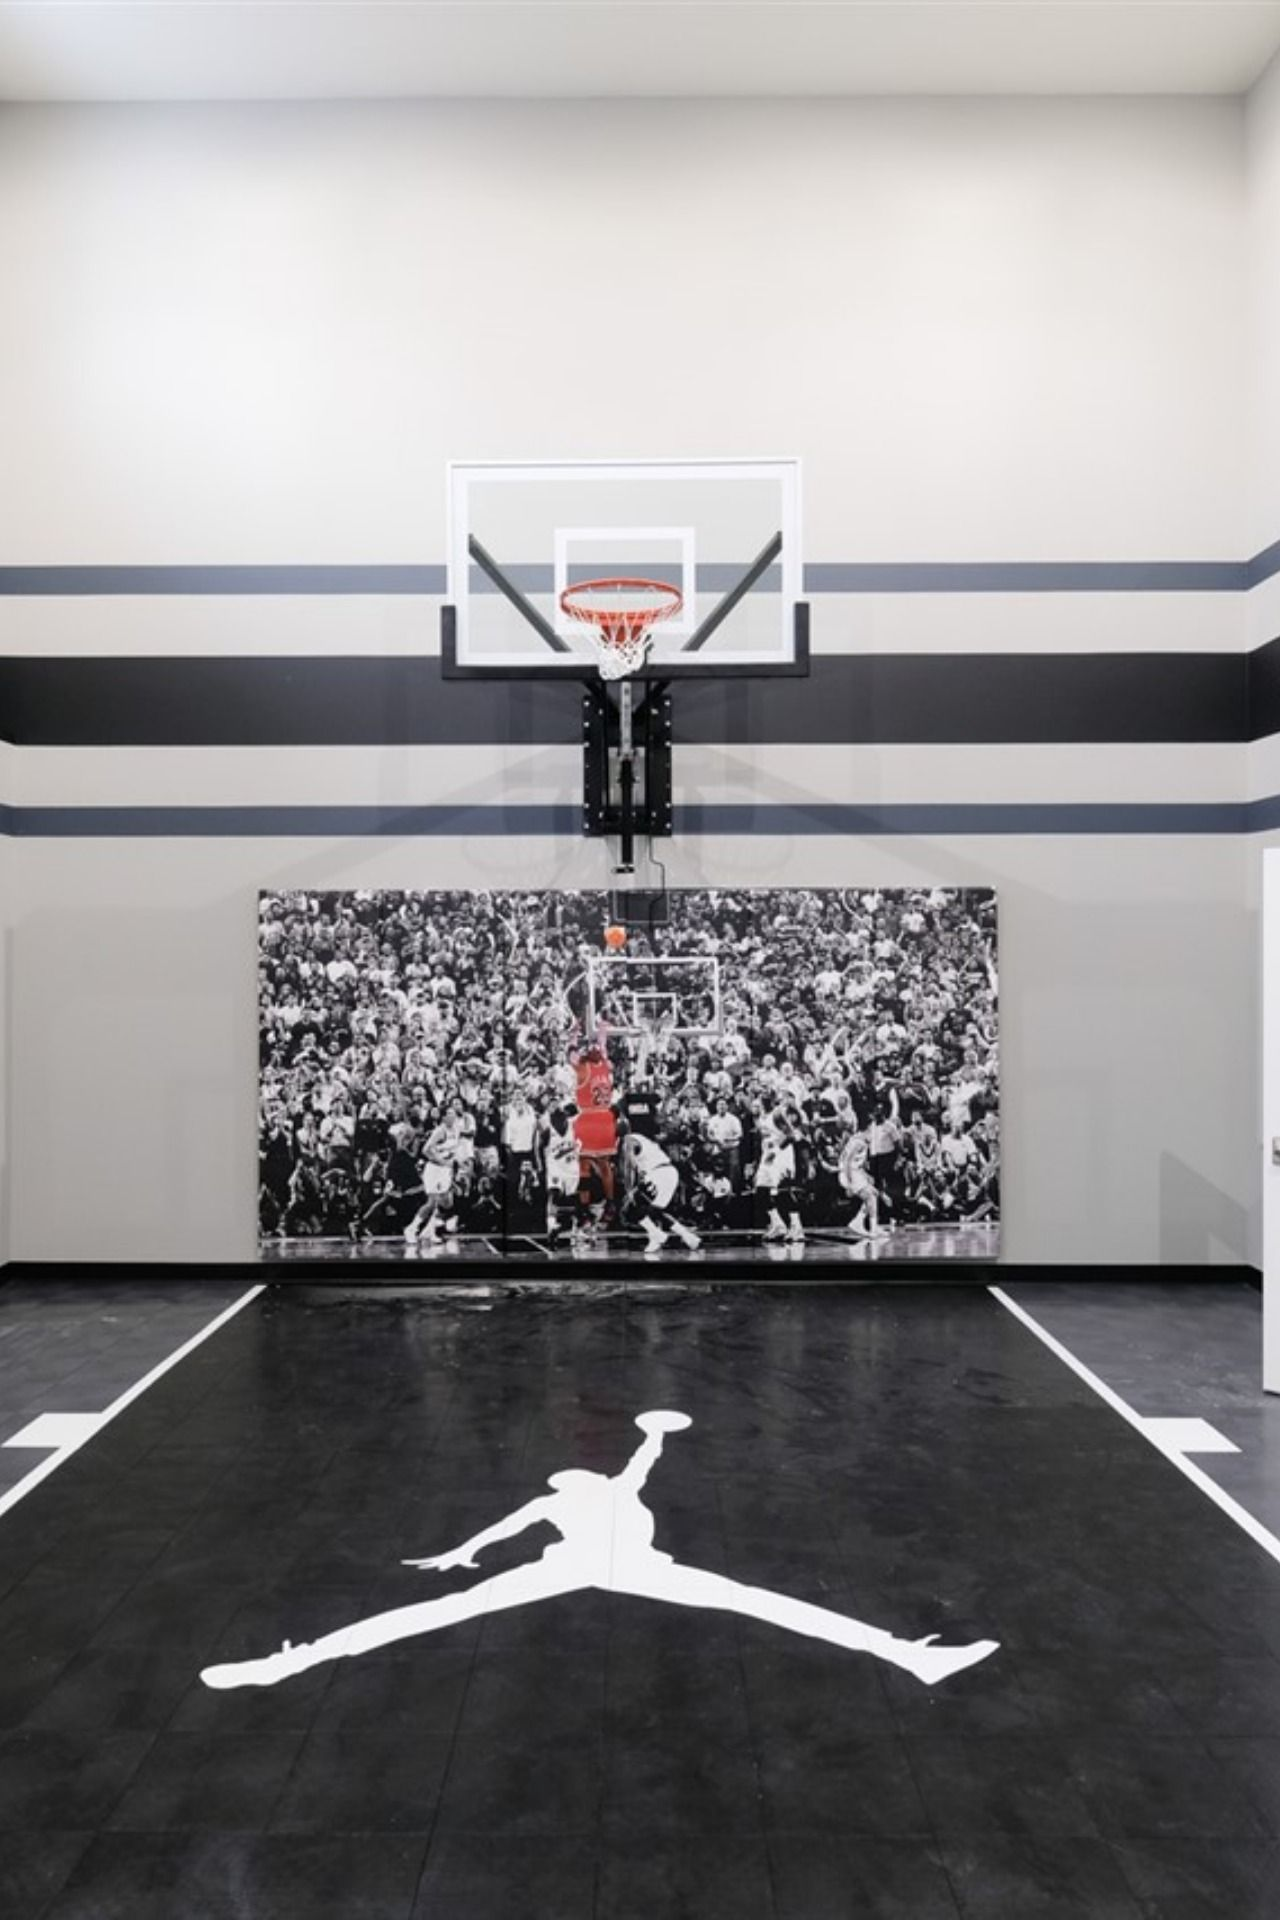 Basketball Wall Safety Pads Home Basketball Court Basketball Court Backyard Dream Home Design